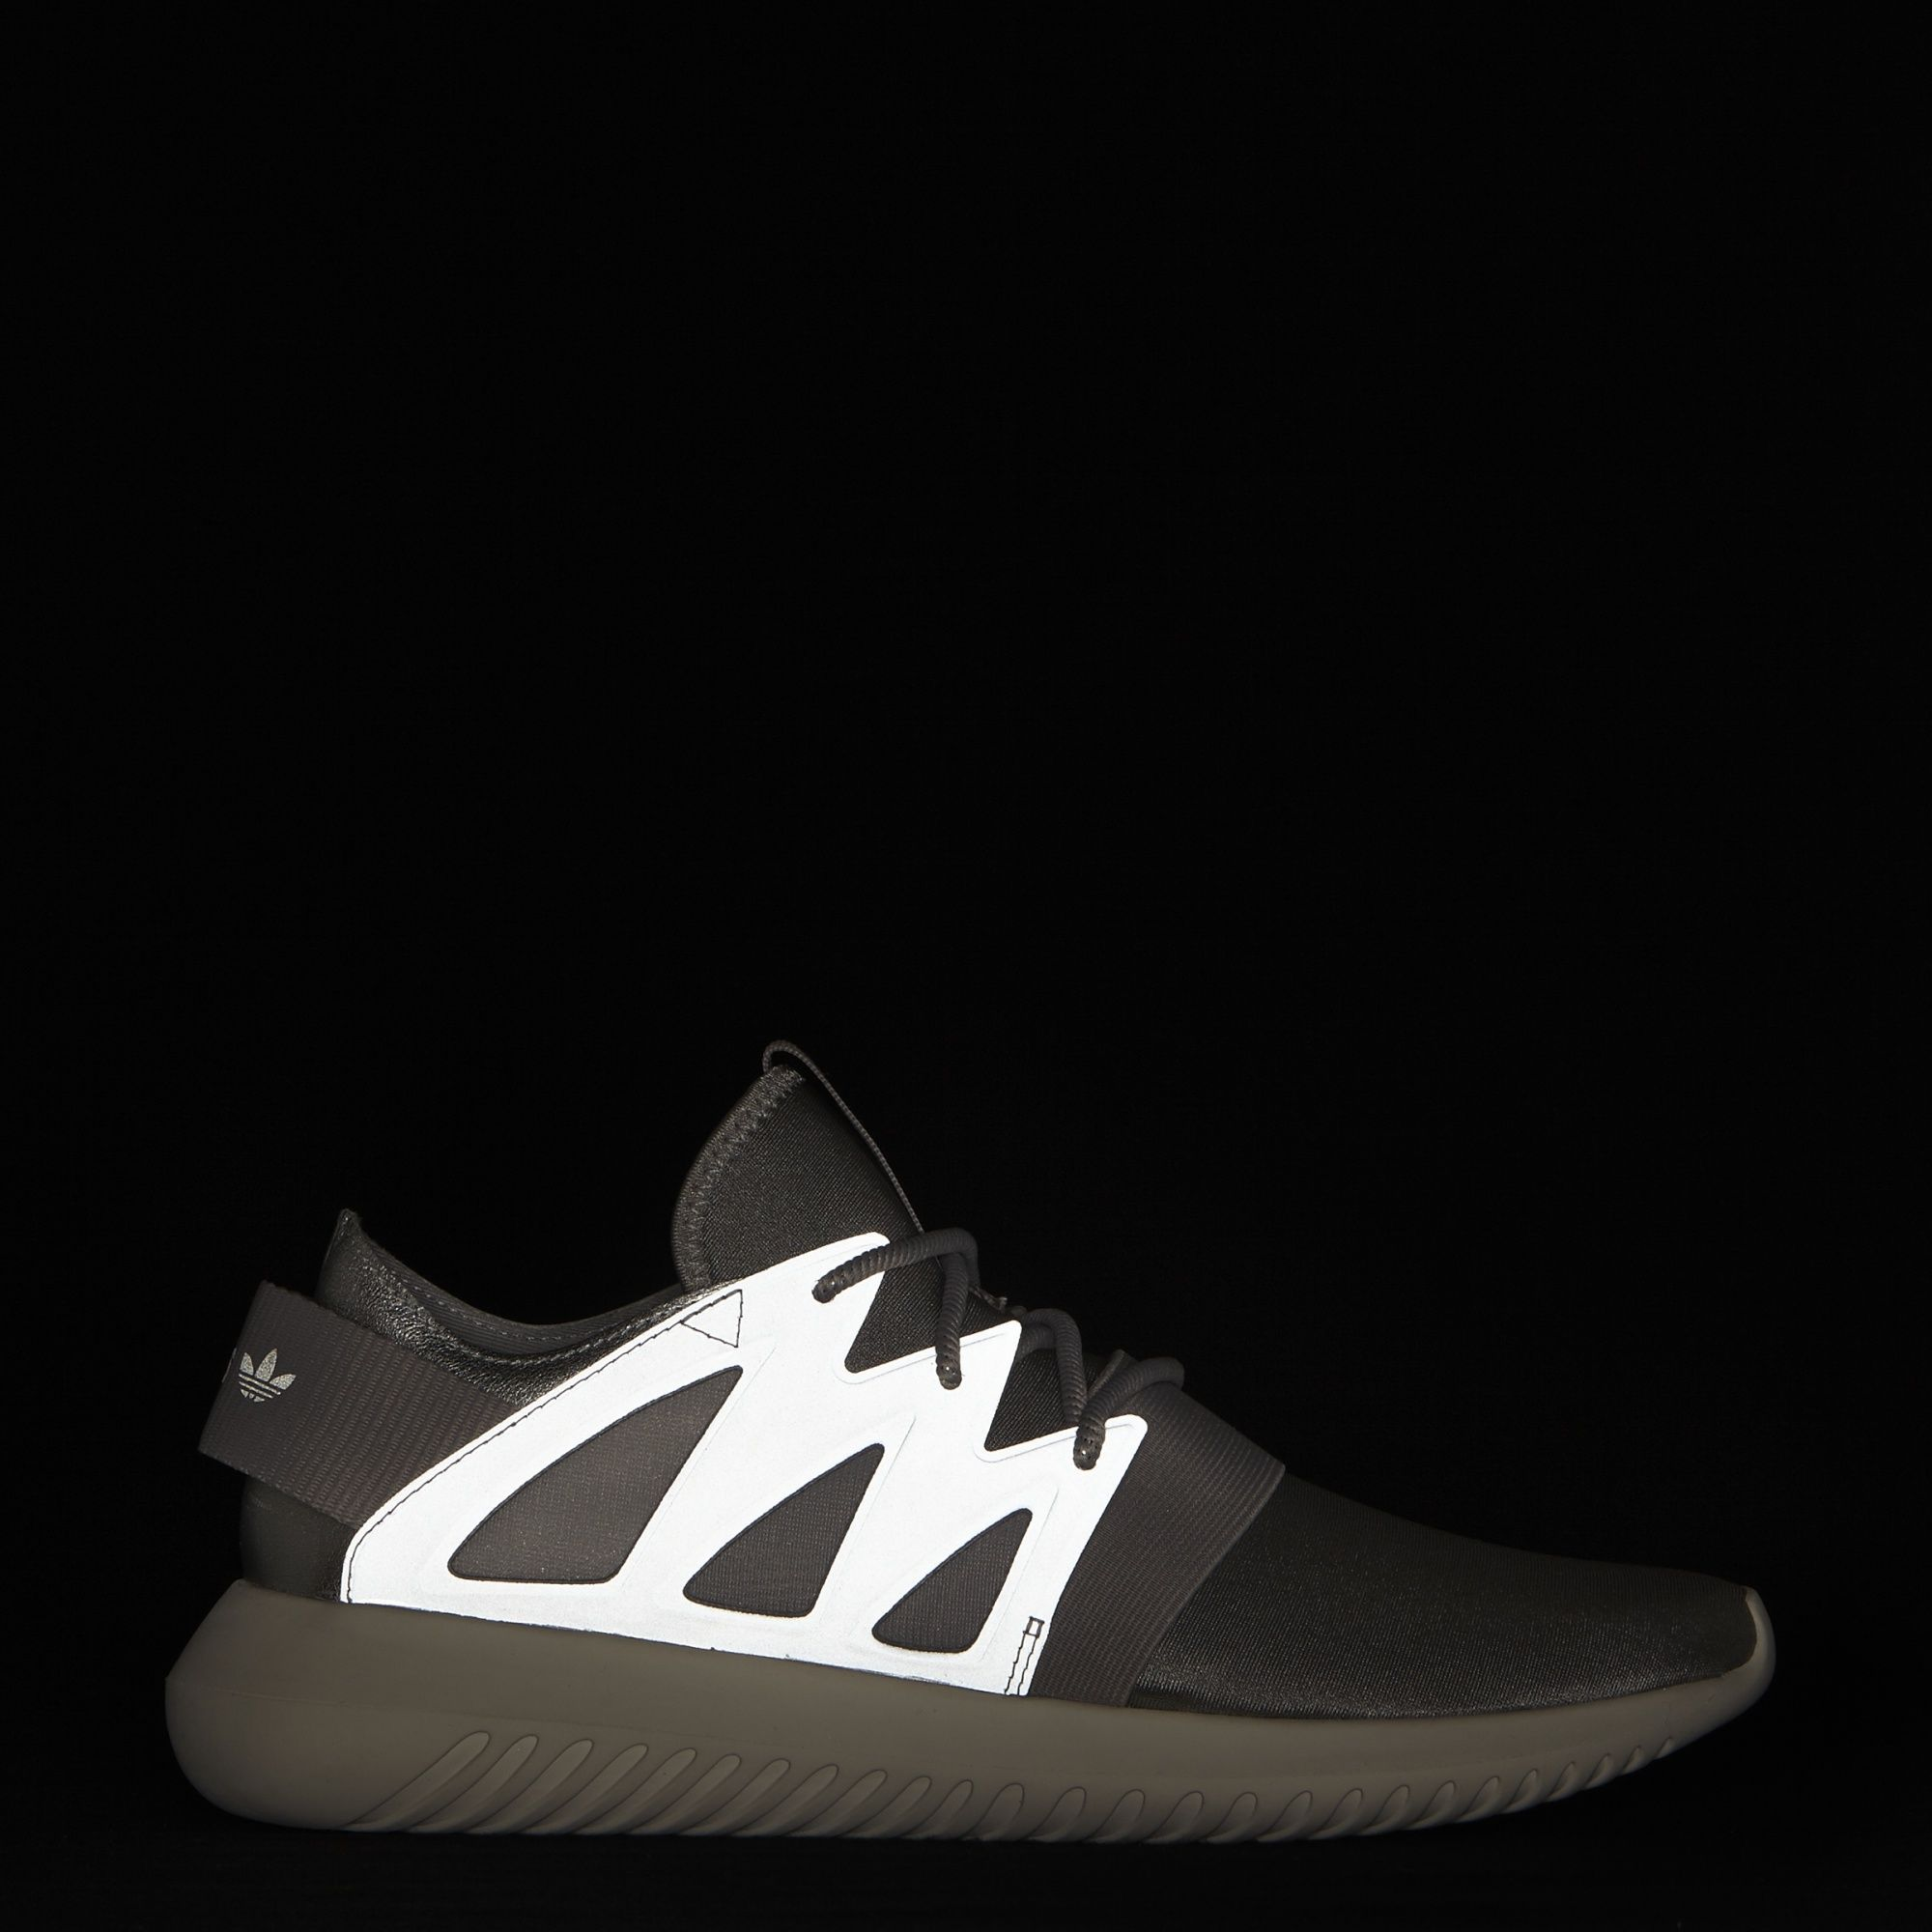 outlet store 63177 384c2 adidas - Tubular Viral Shoes Metallic Silver / Core White ...